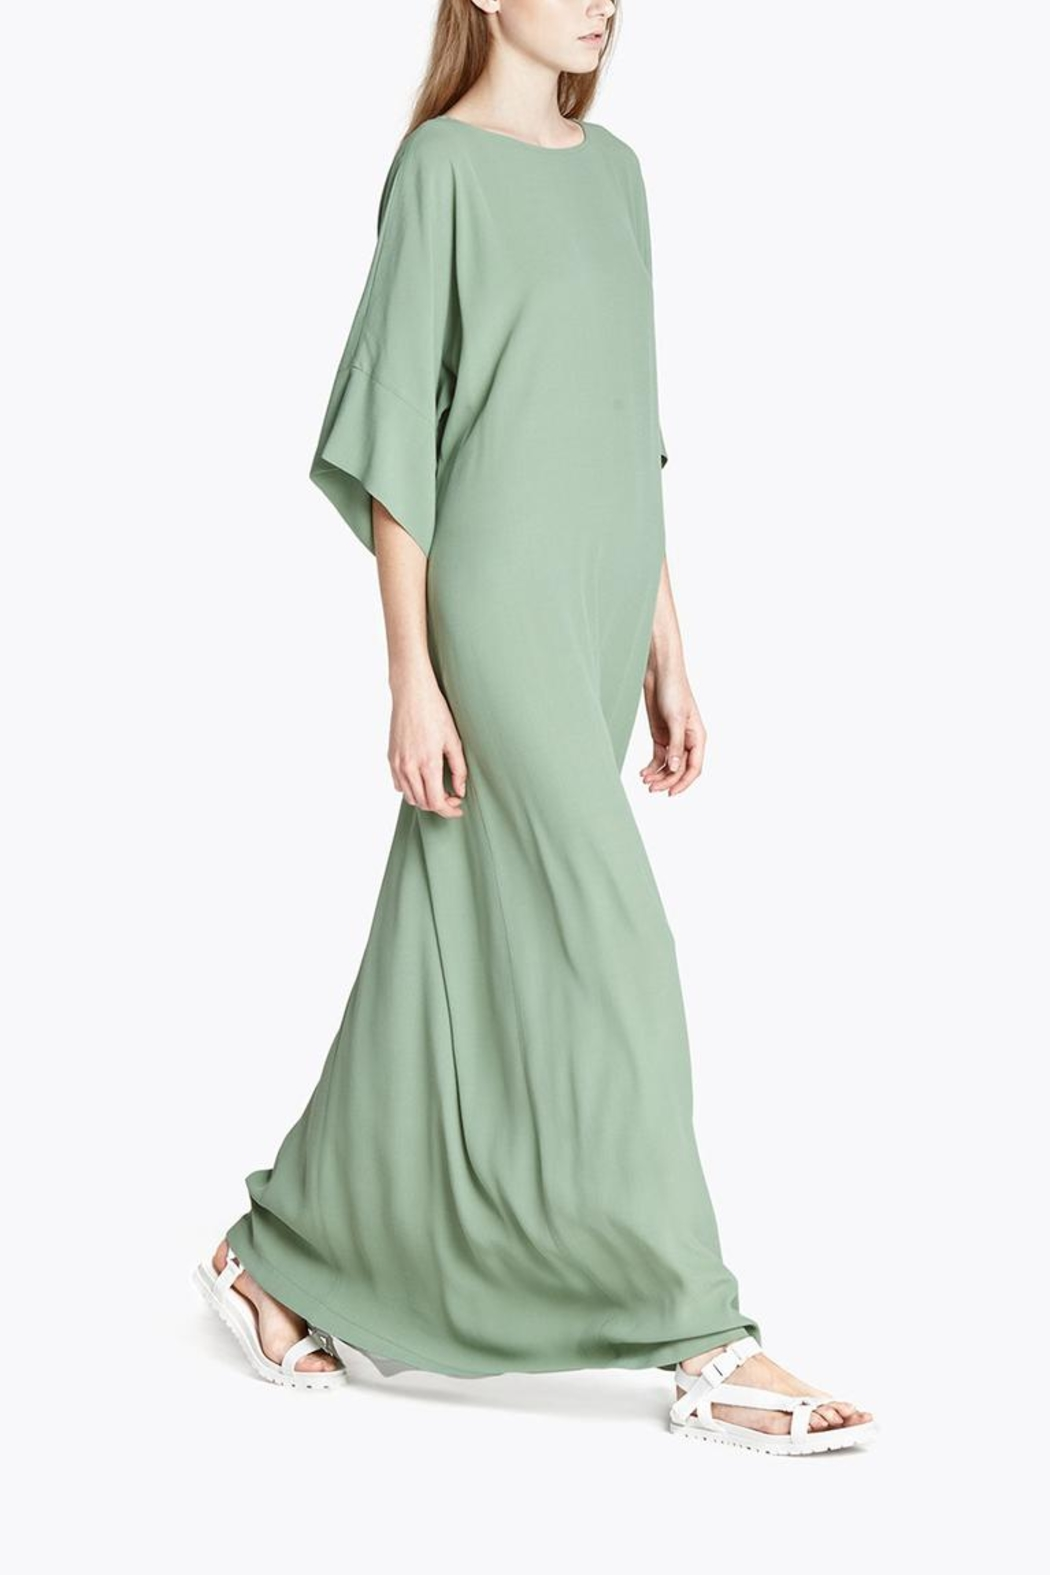 CYRILLE GASSILINE Mint Maxi Dress - Front Full Image